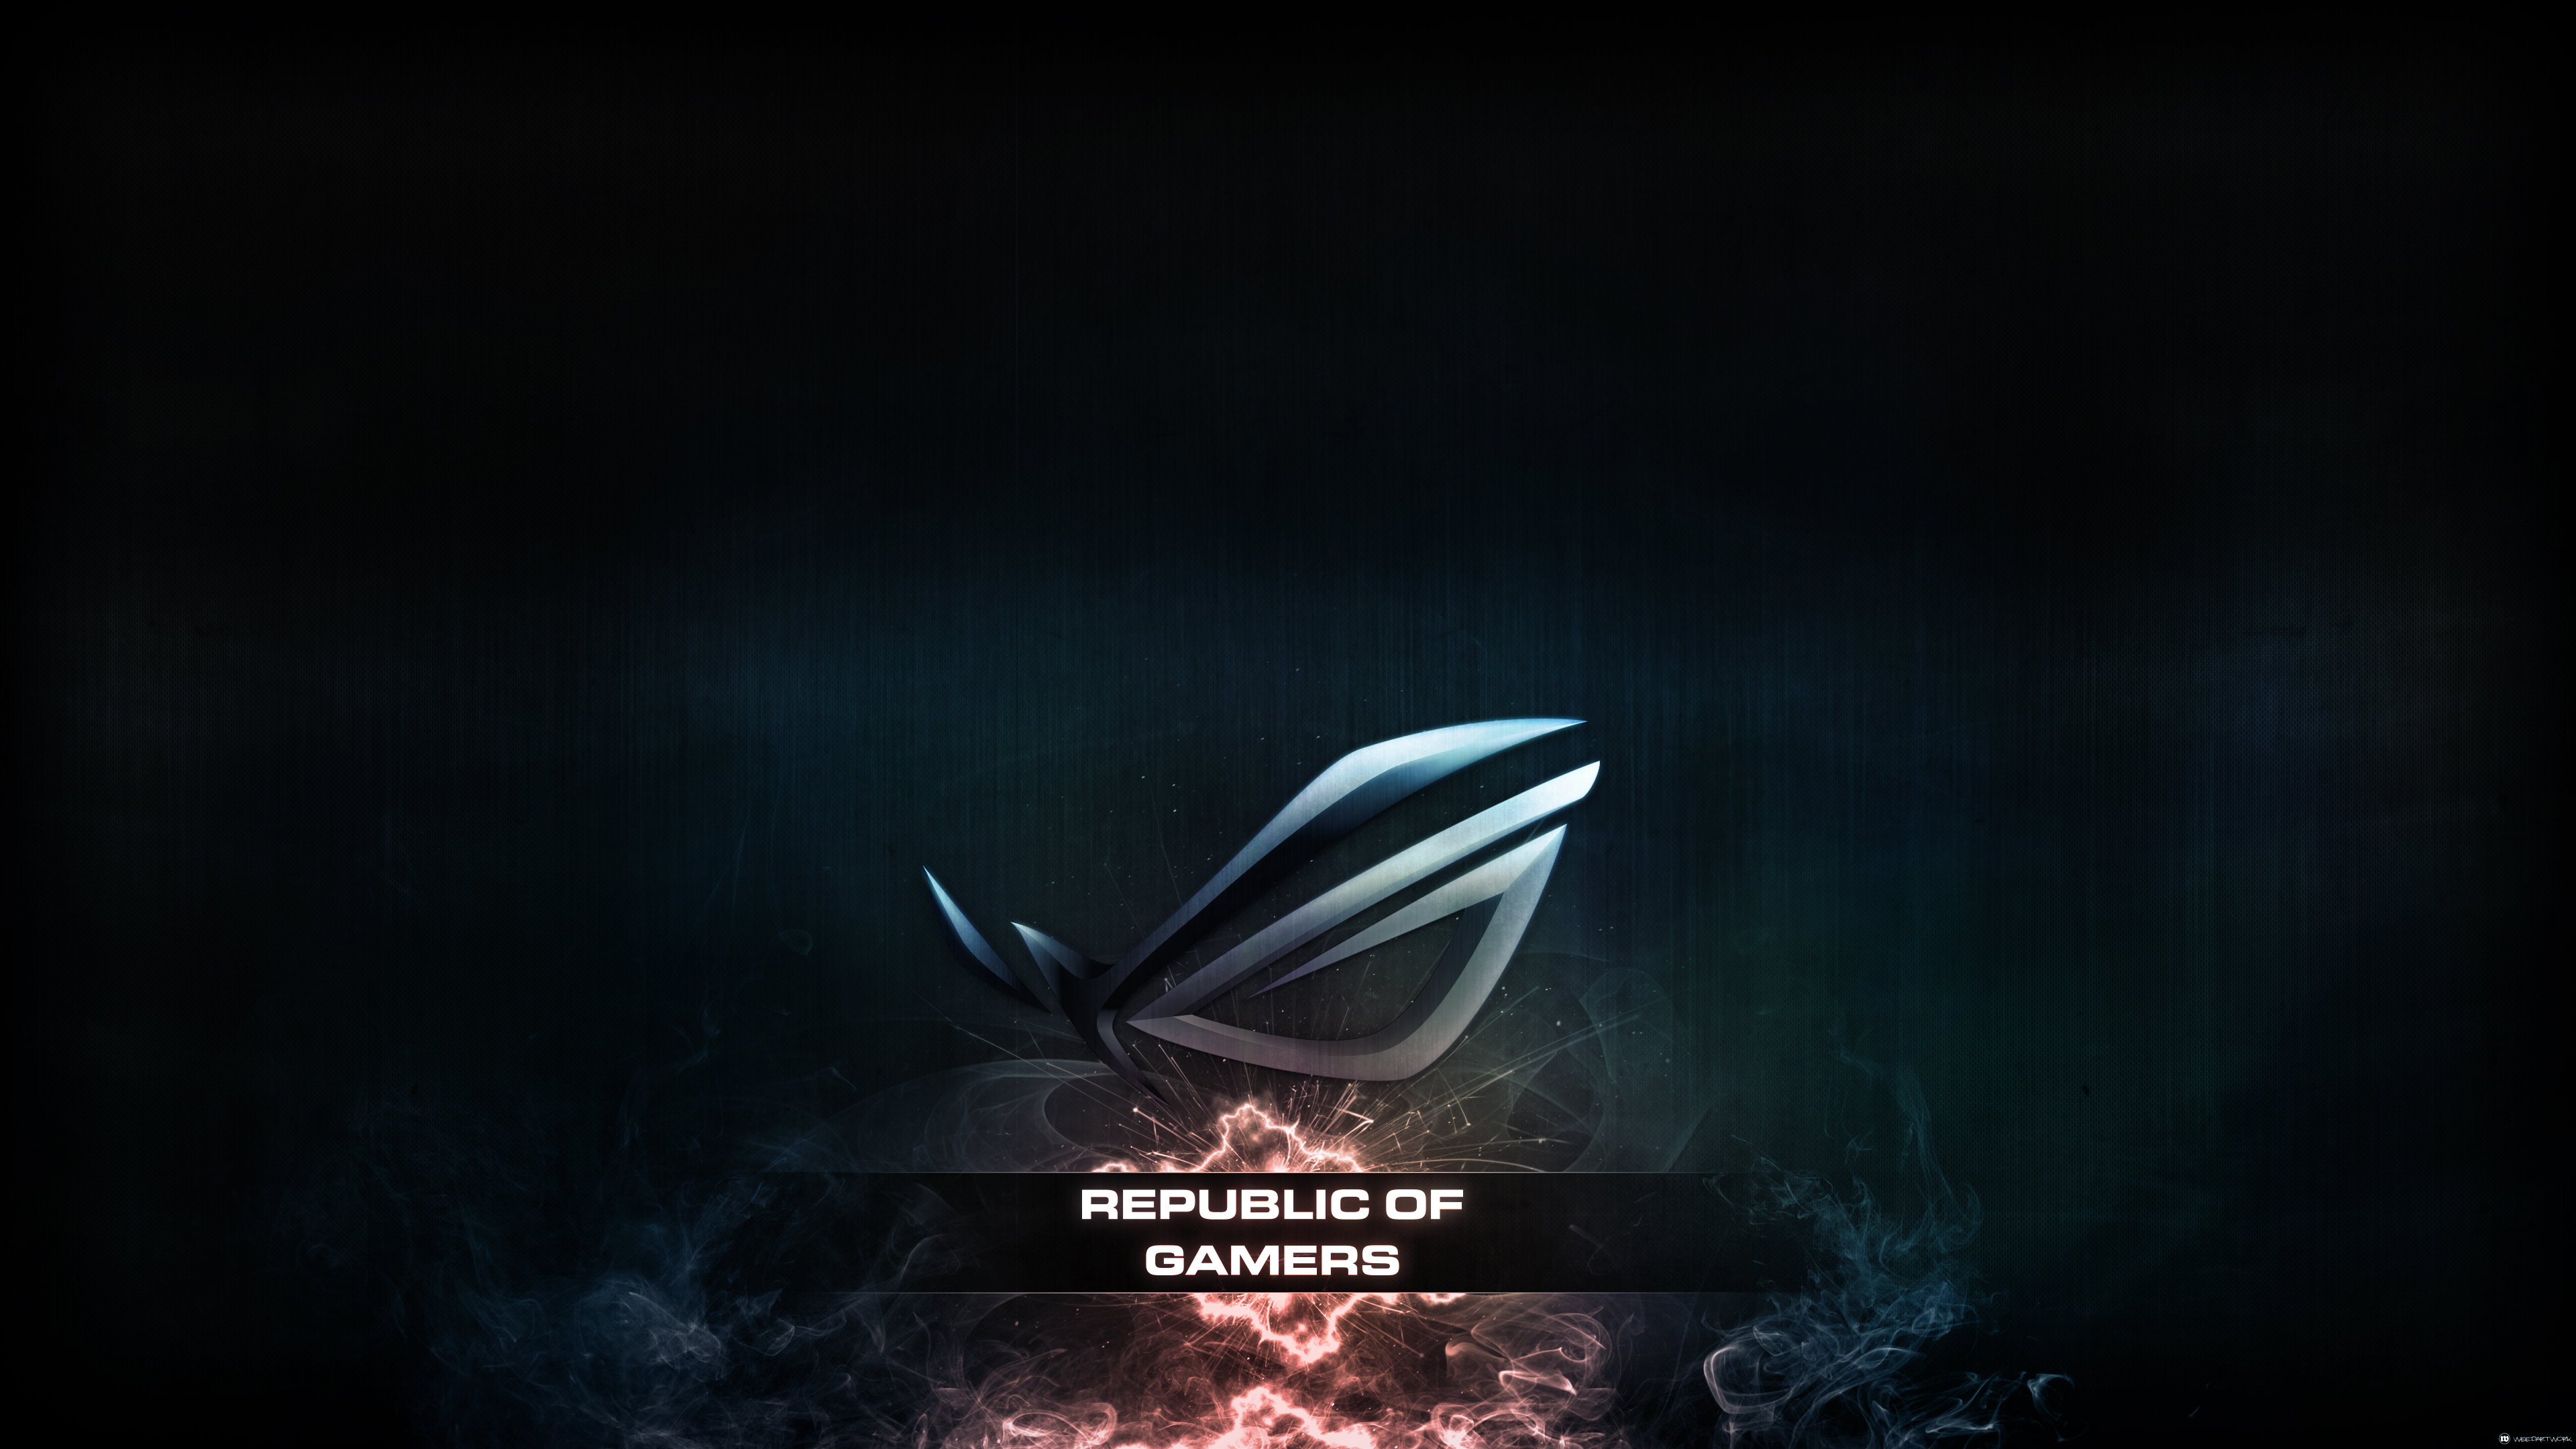 Win An ASUS PB287Q Monitor 2014 4K UHD Wallpaper Competition 3840x2160